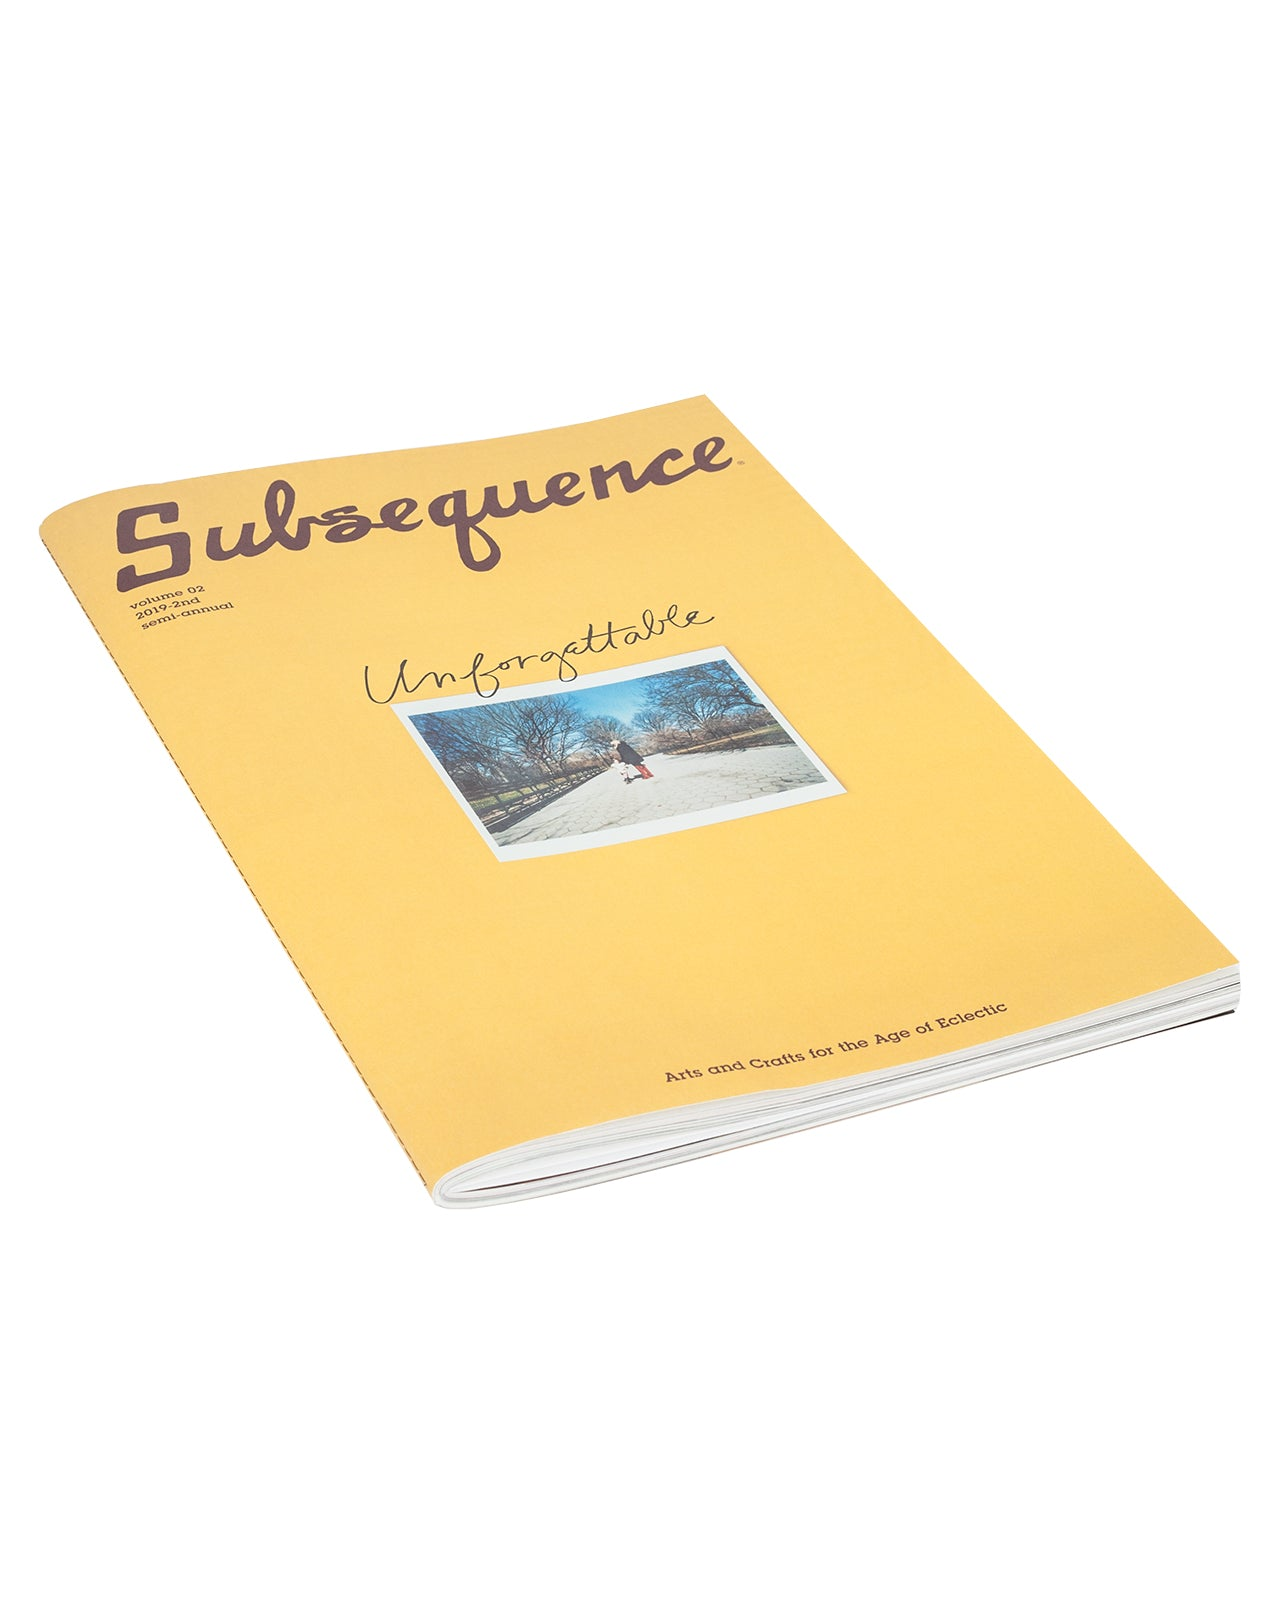 Subsequence Magazine, Vol 2